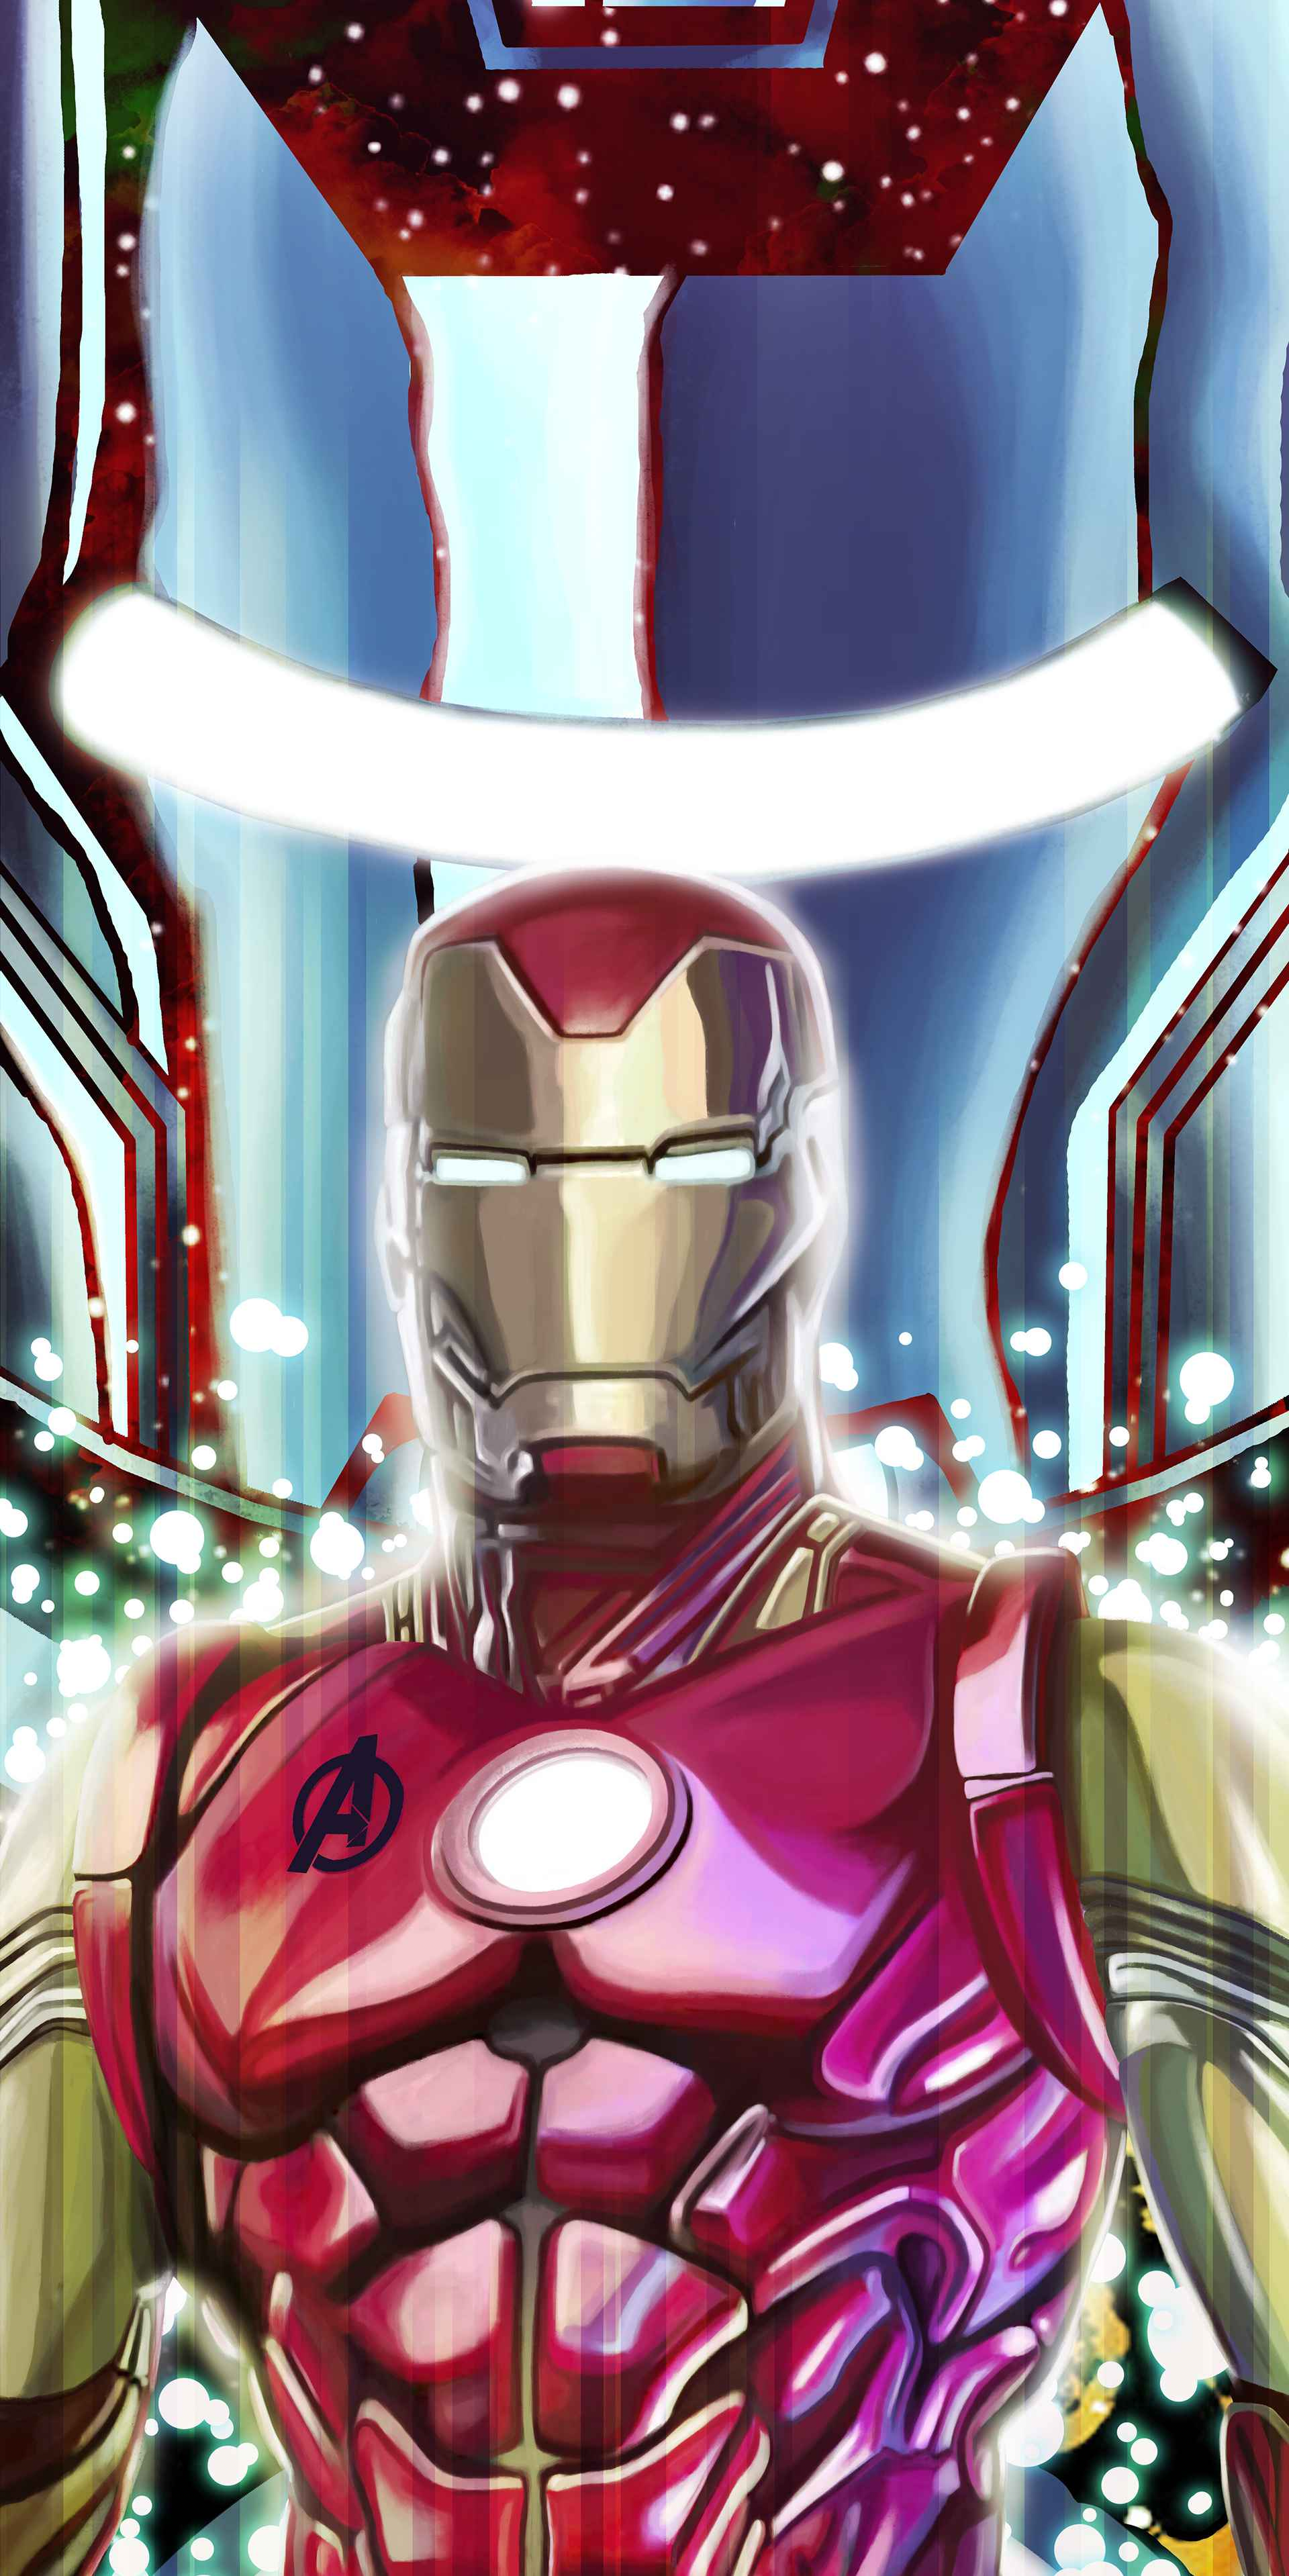 Iron Man Mark 85 Armor Art iPhone Wallpaper